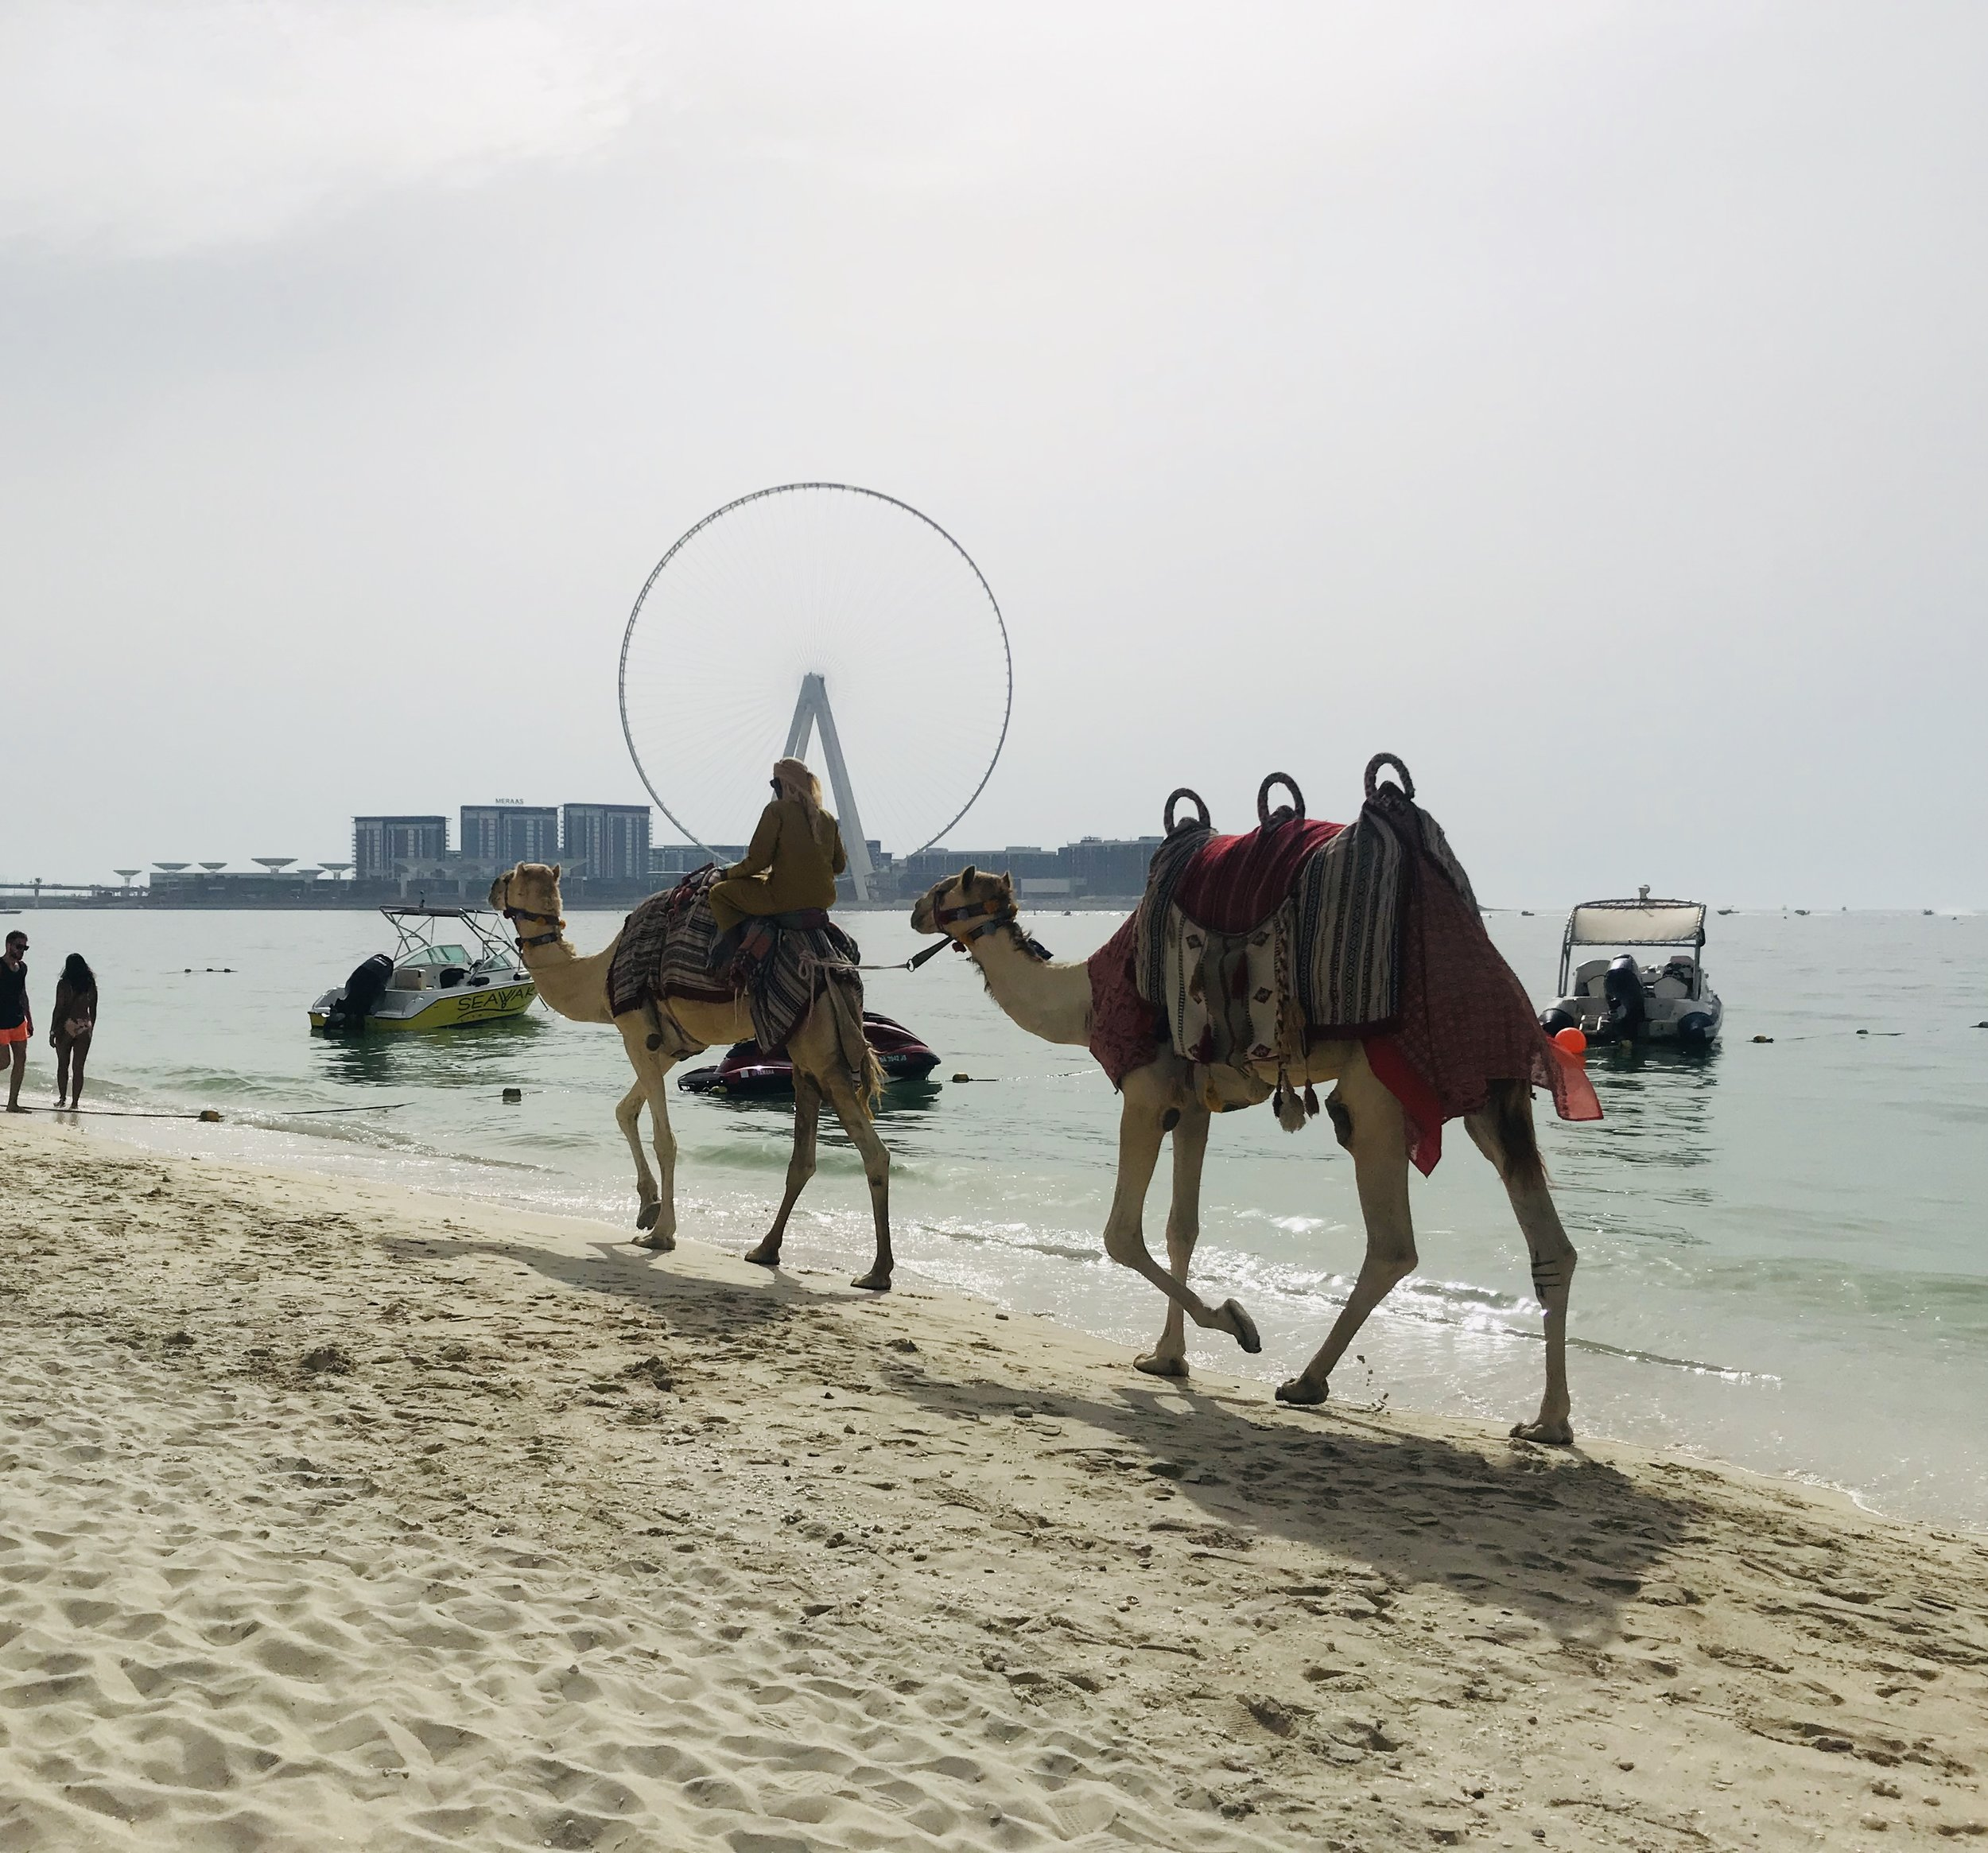 Camels on the beach in Dubai